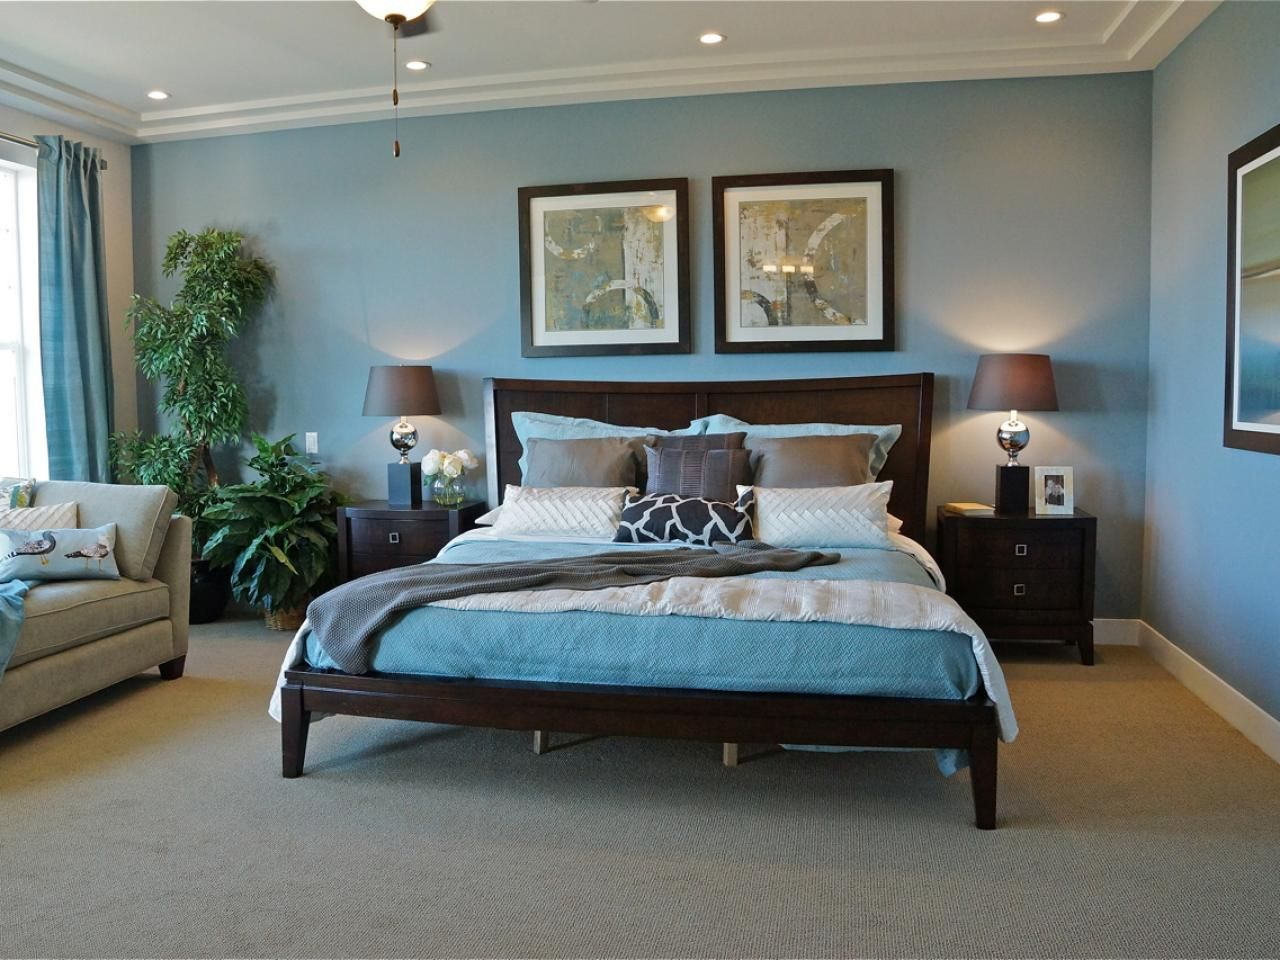 soothing and stately, this traditional bedroom pairs dark wood